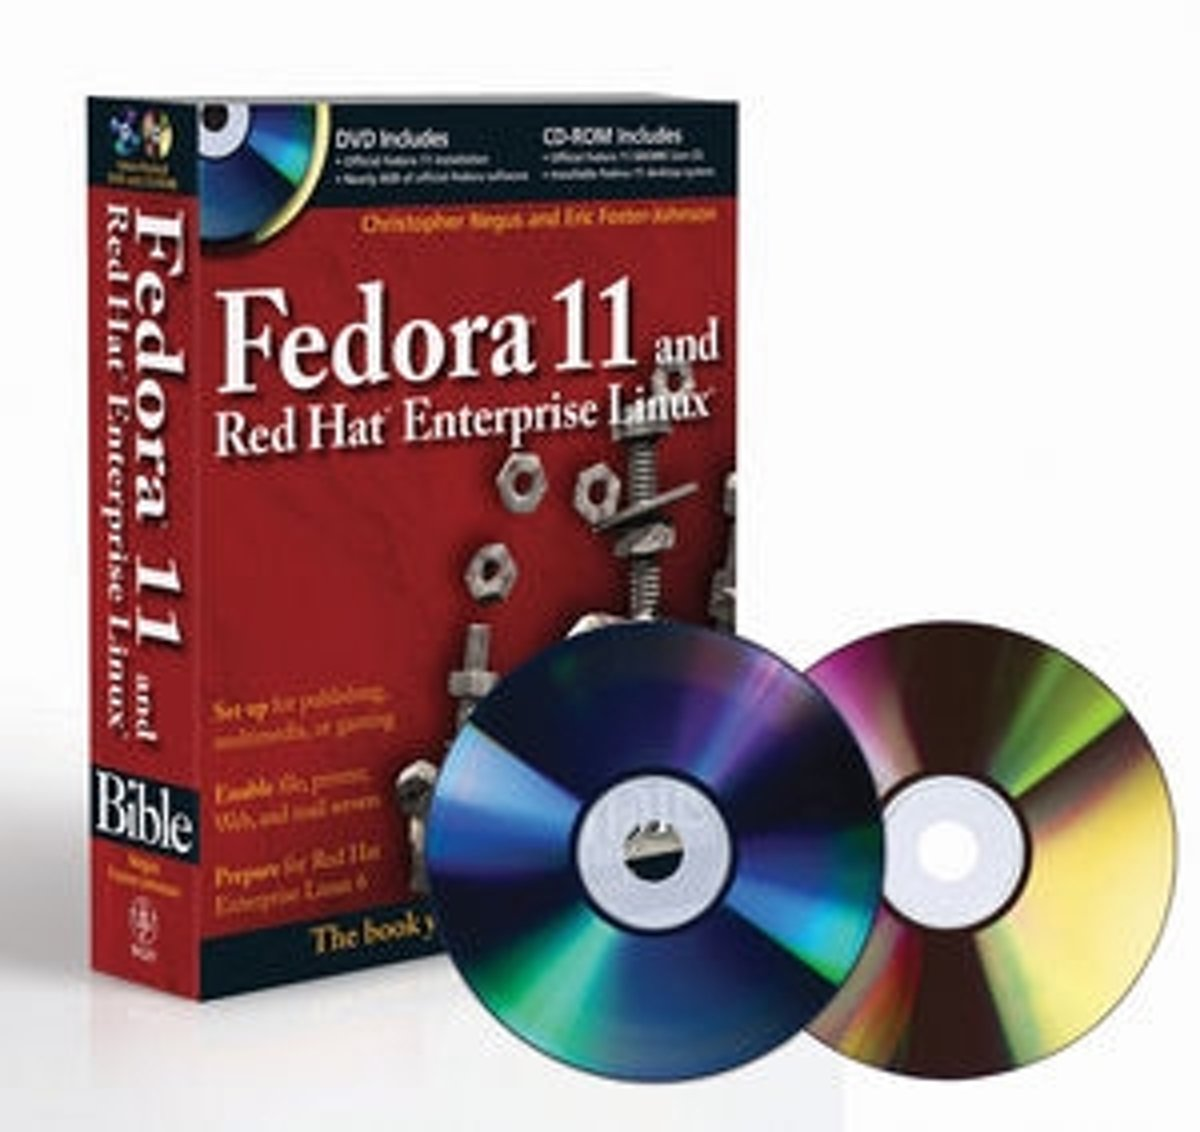 bol com | Fedora 11 and Red Hat Enterprise Linux Bible